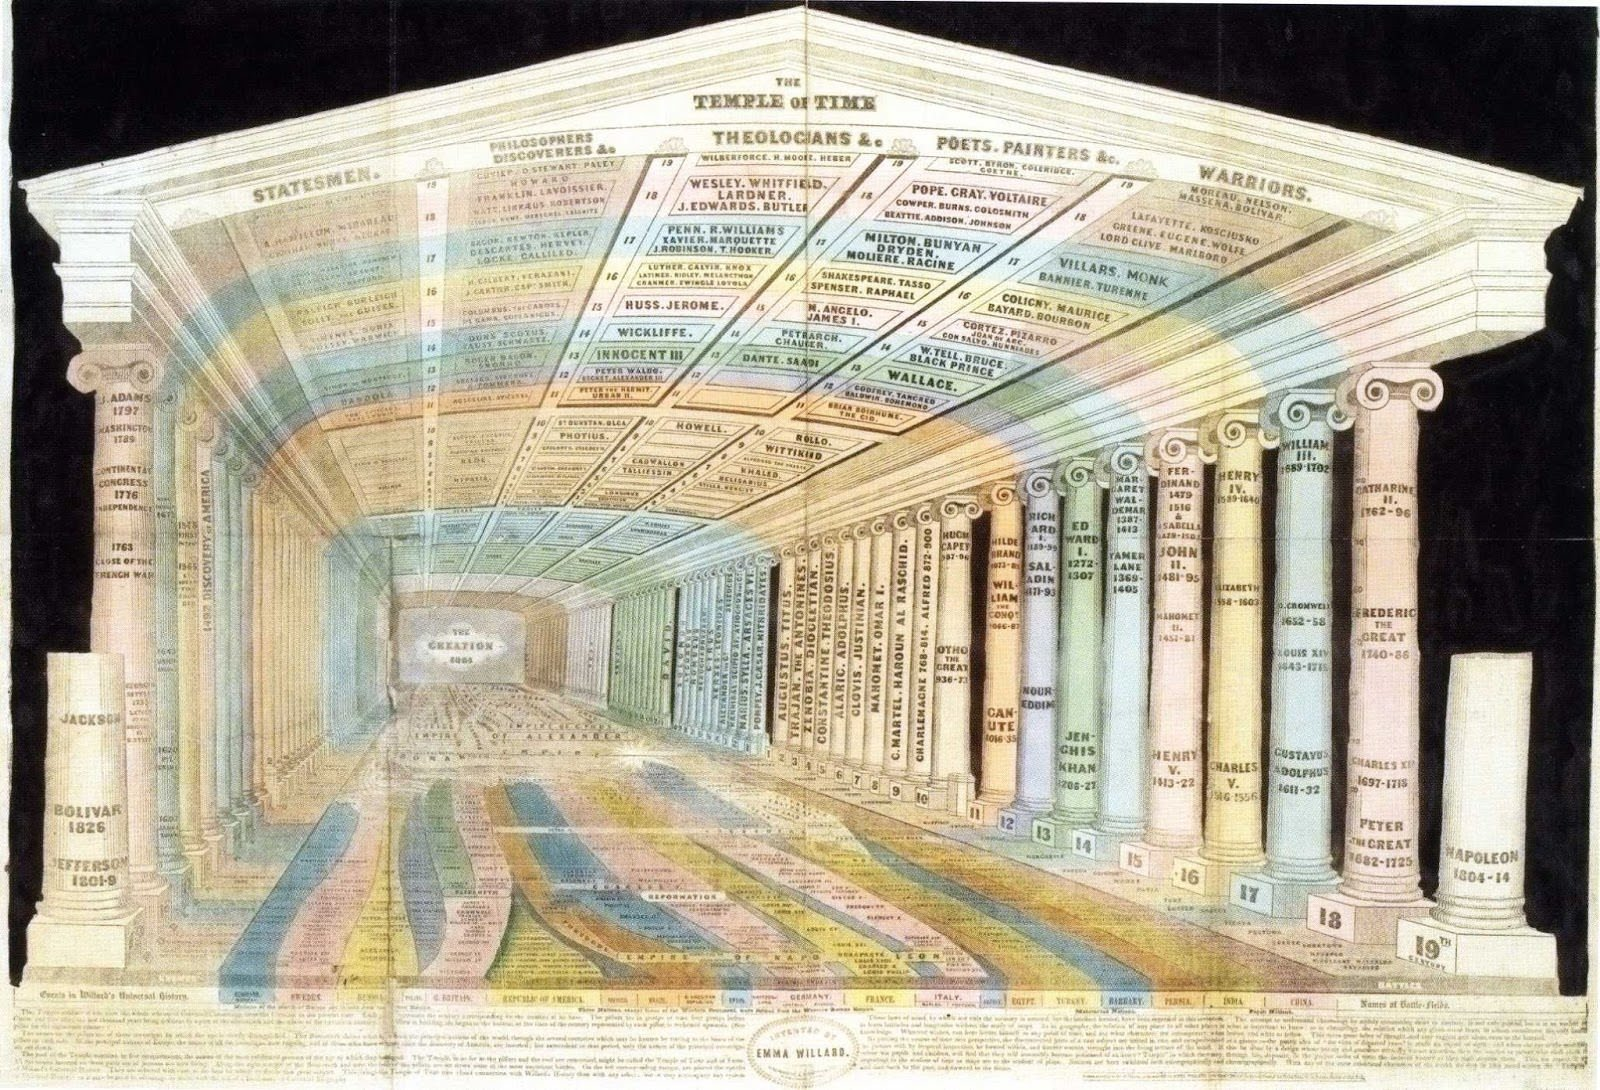 The Temple of Time Cartographie Data Visualisations